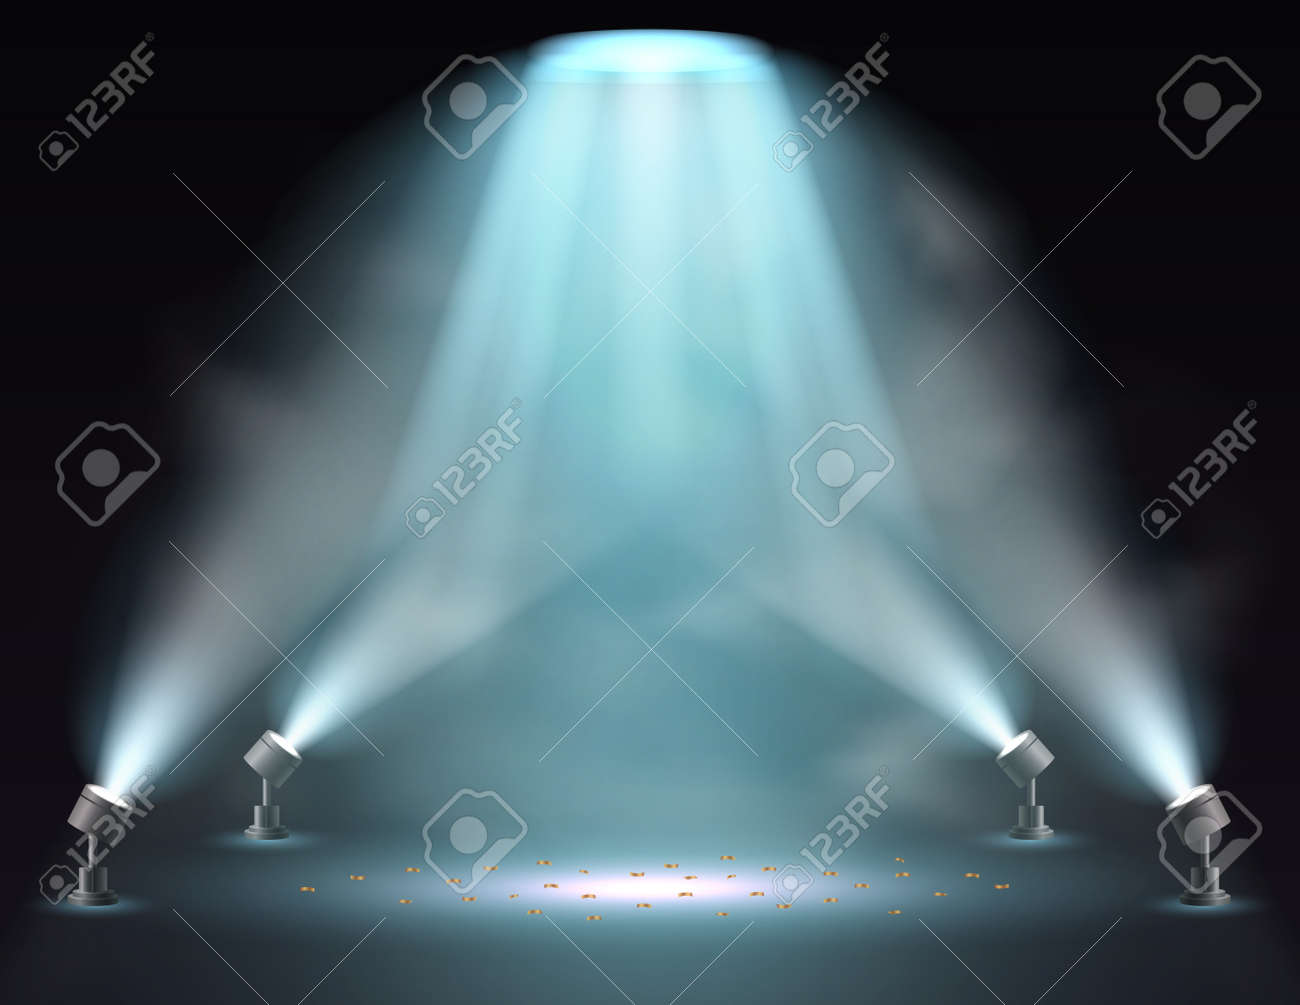 Showtime background illuminated by spotlights - 168266578